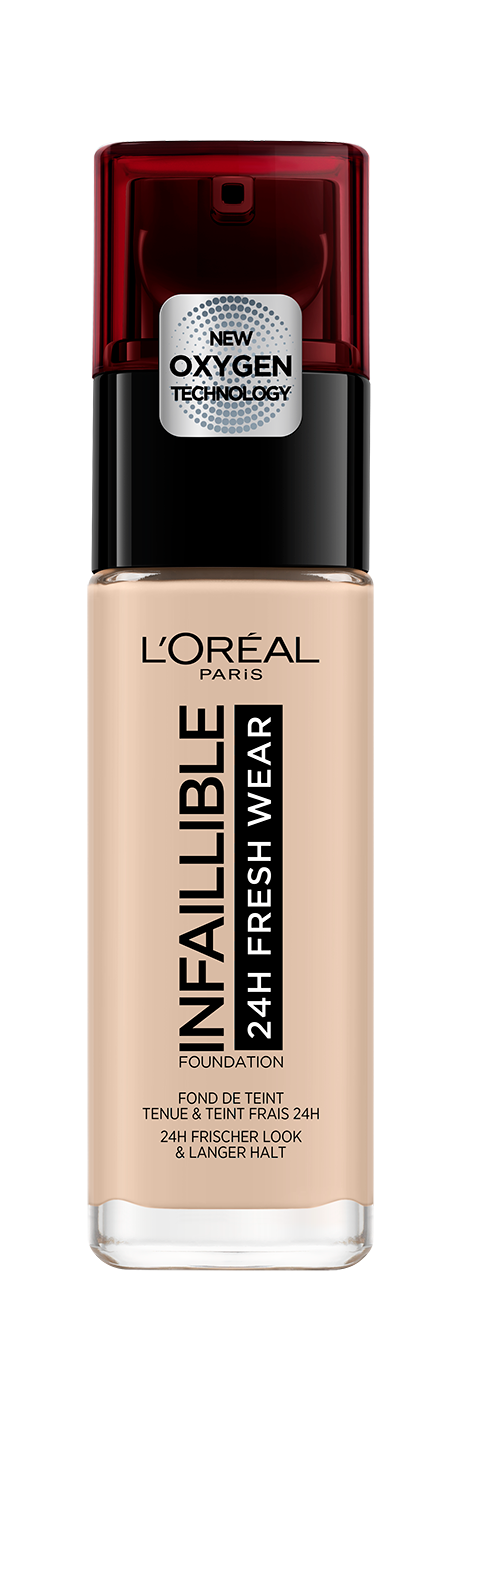 L'ORÉAL Paris Infallible 24H Liquid Foundation - 015 Porcelain - zapple.pk